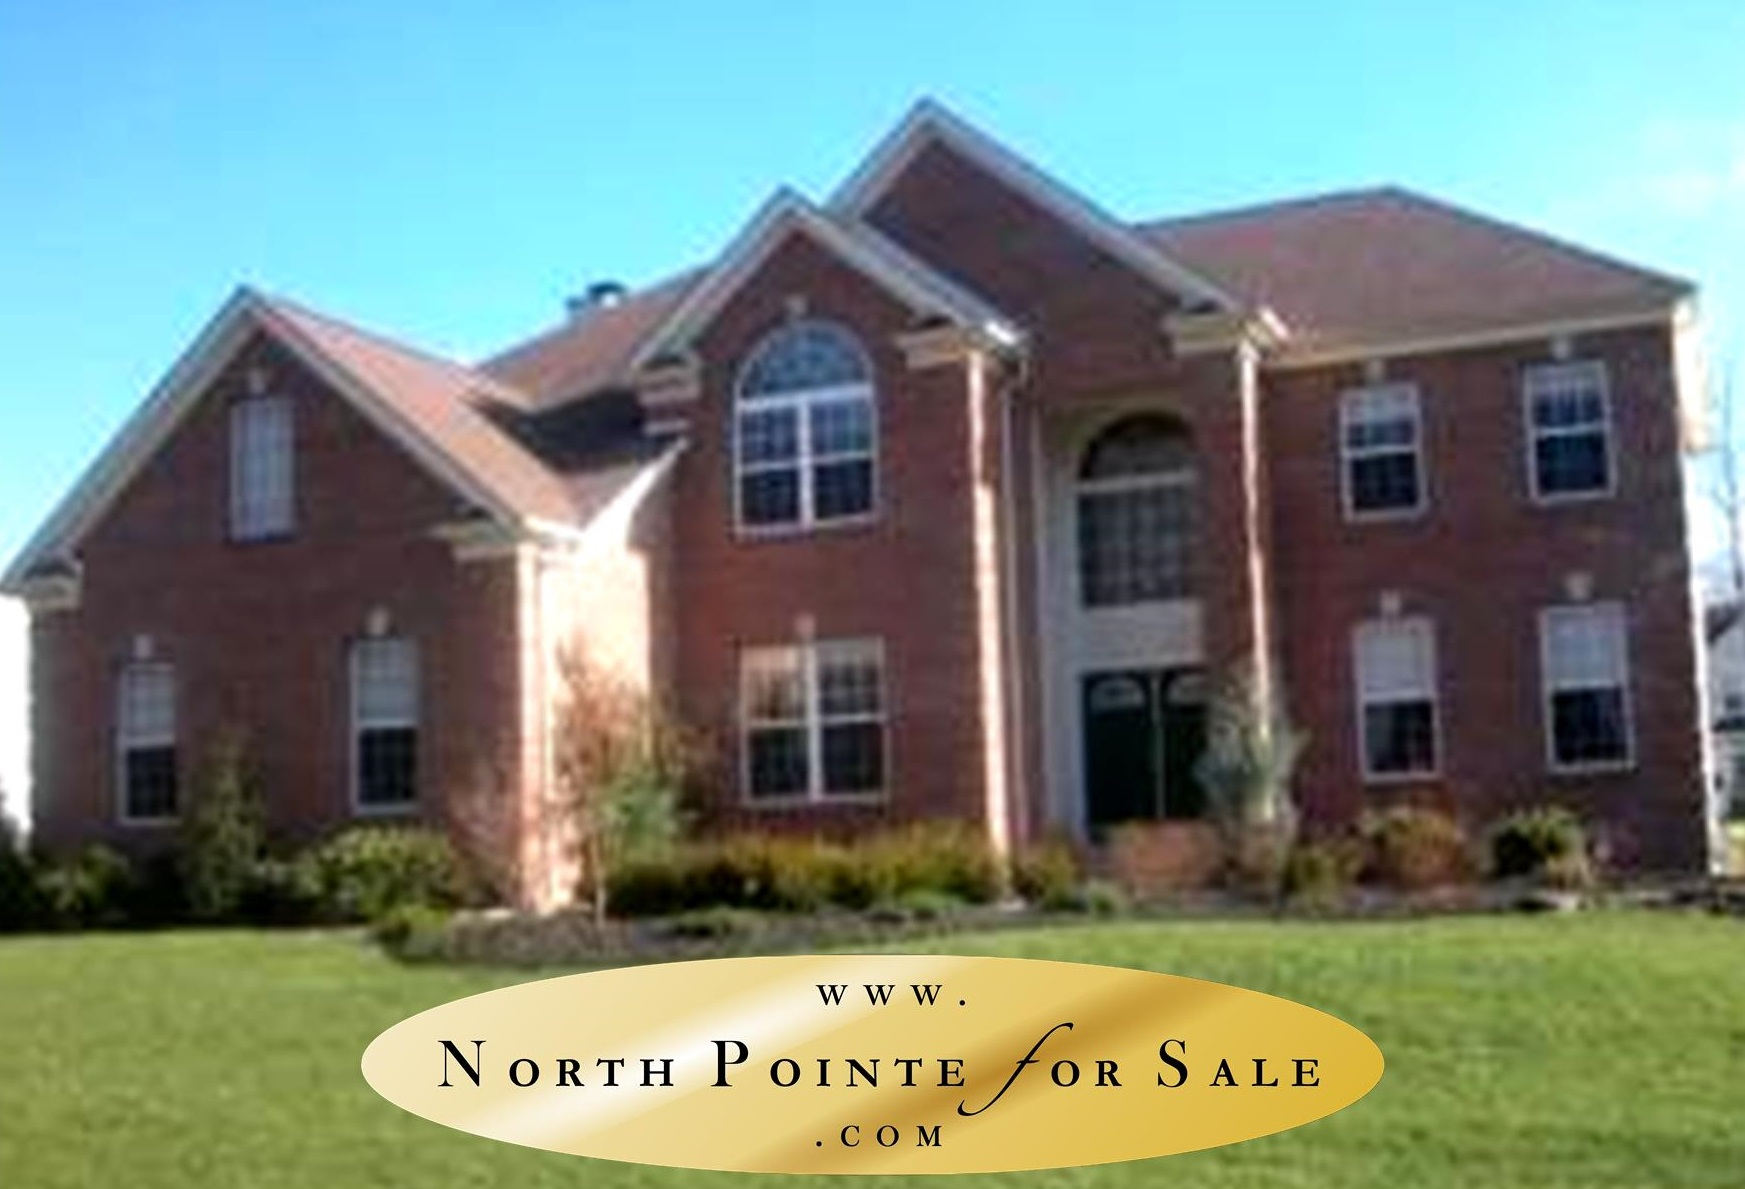 North Pointe for Sale | www.NorthPointeforSale.com